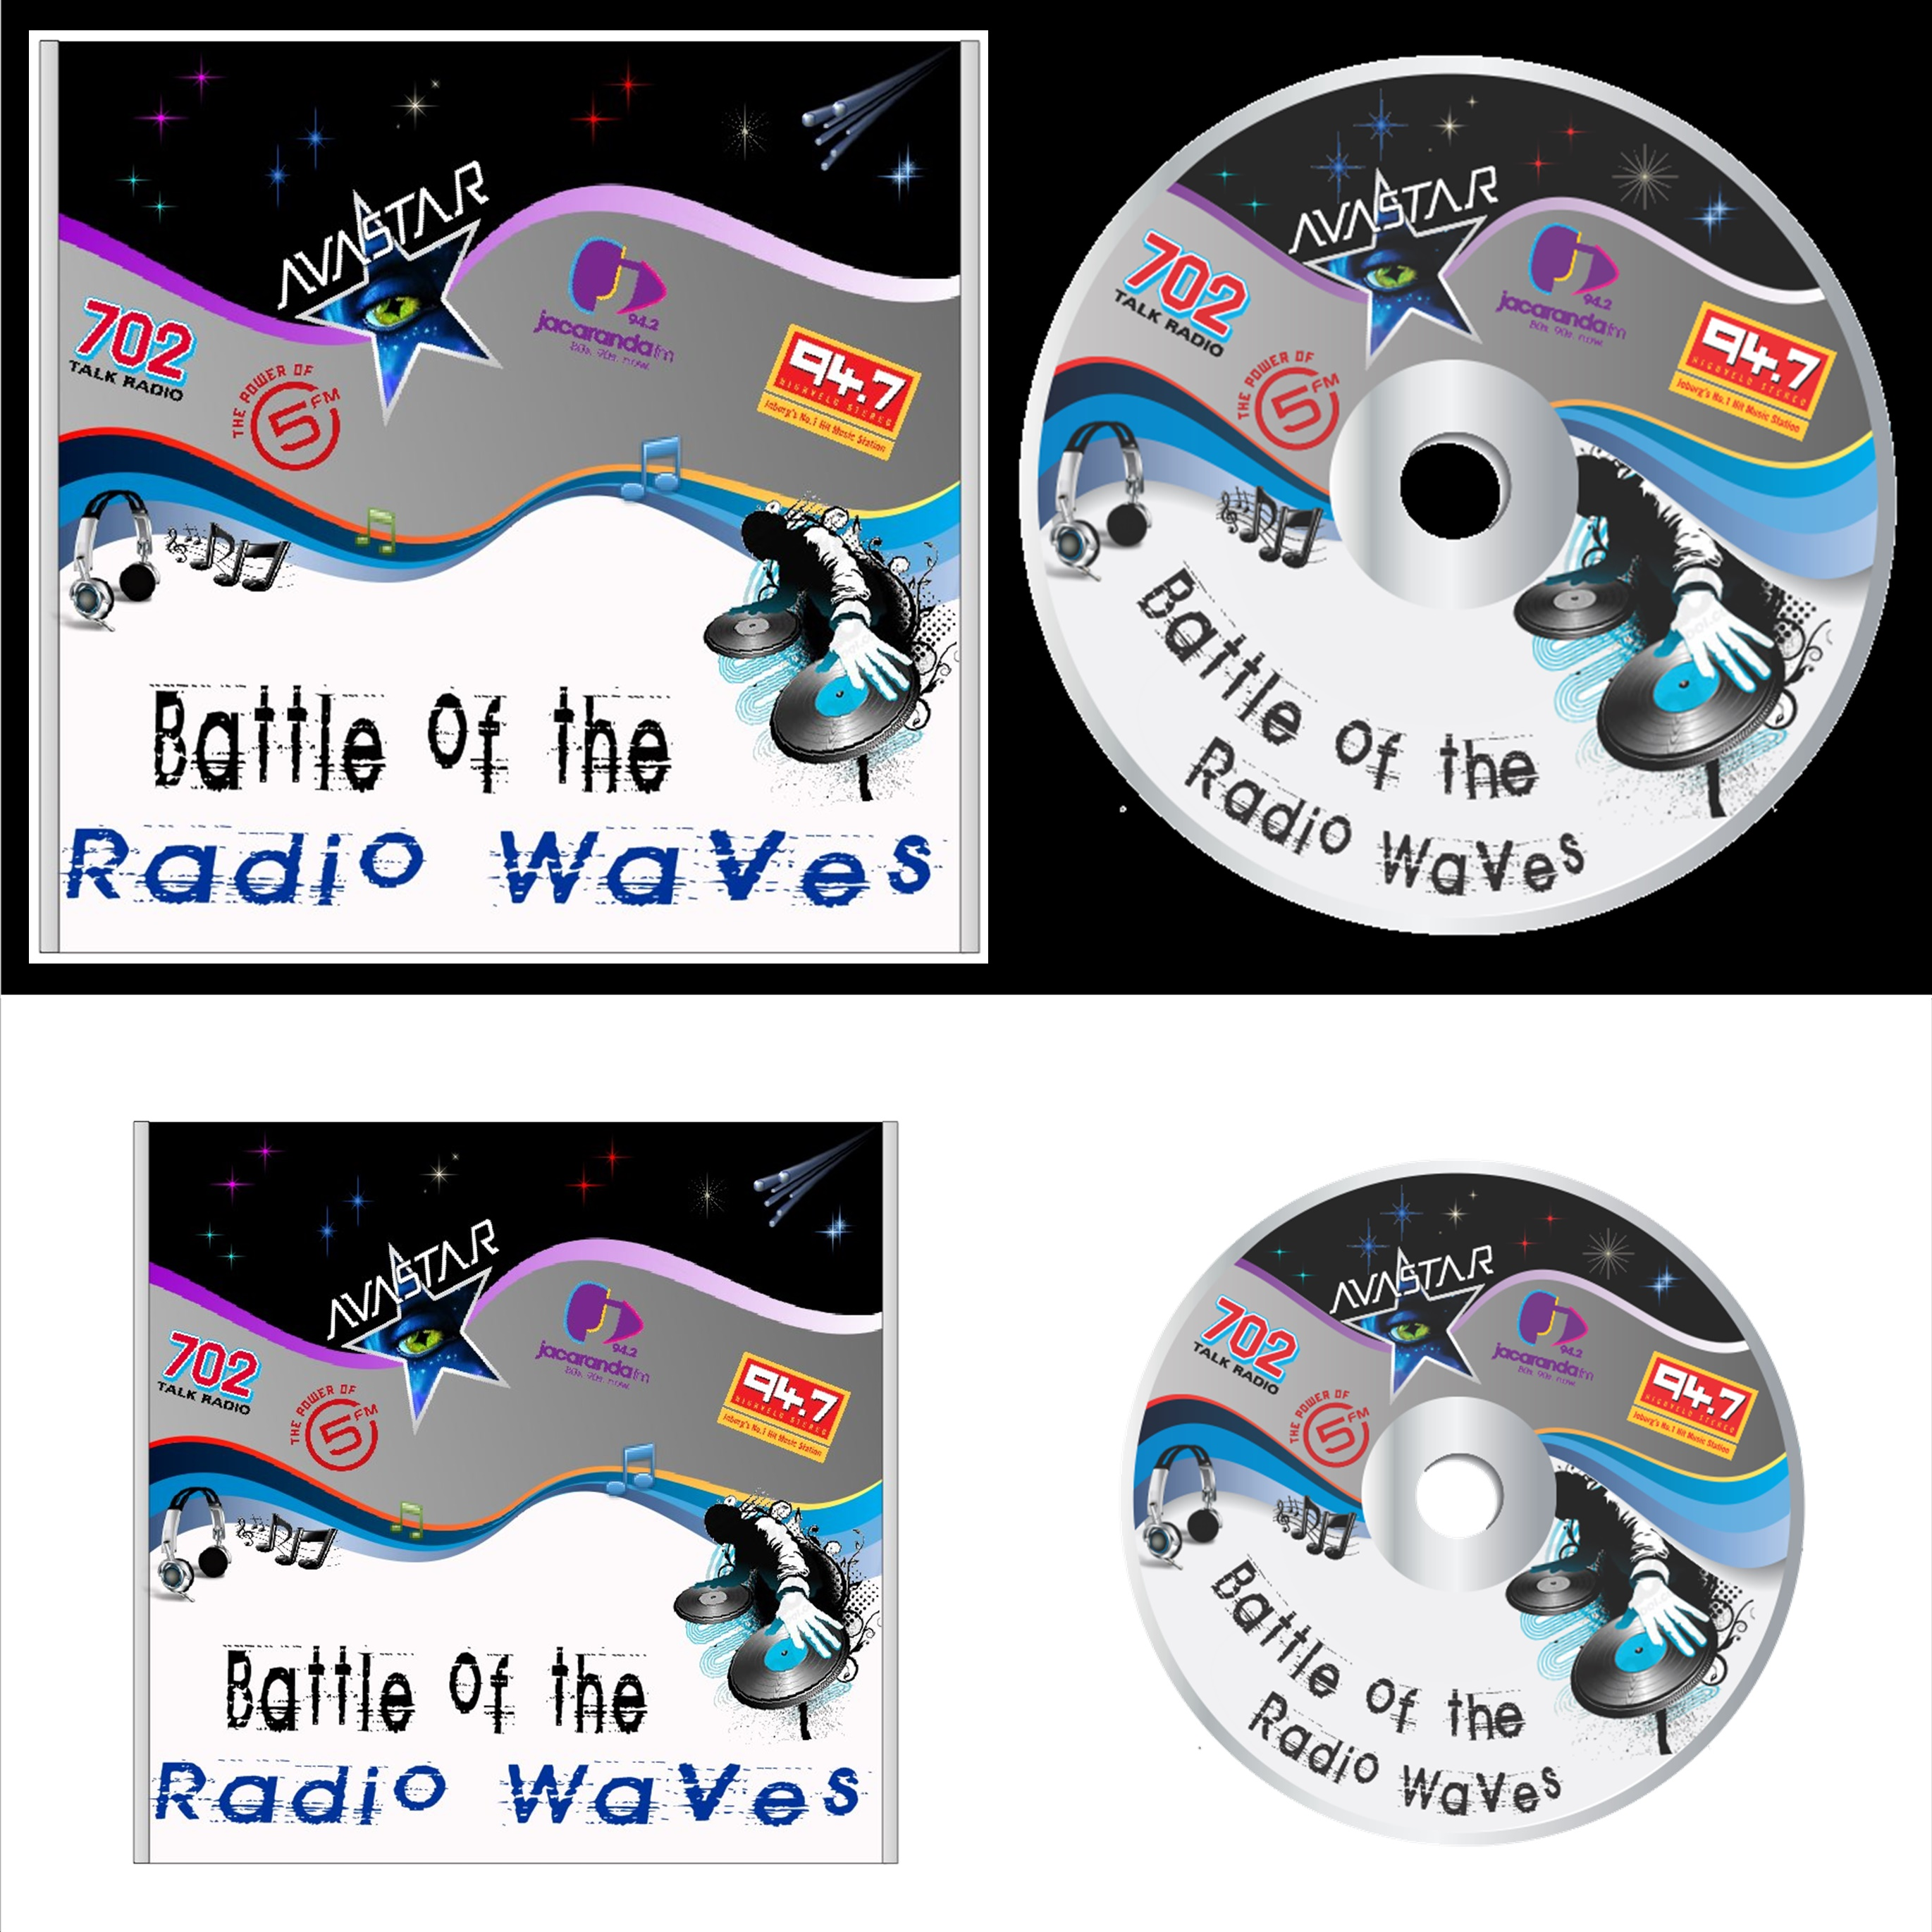 Avastar Nightclub CD & CD Cover Design 1